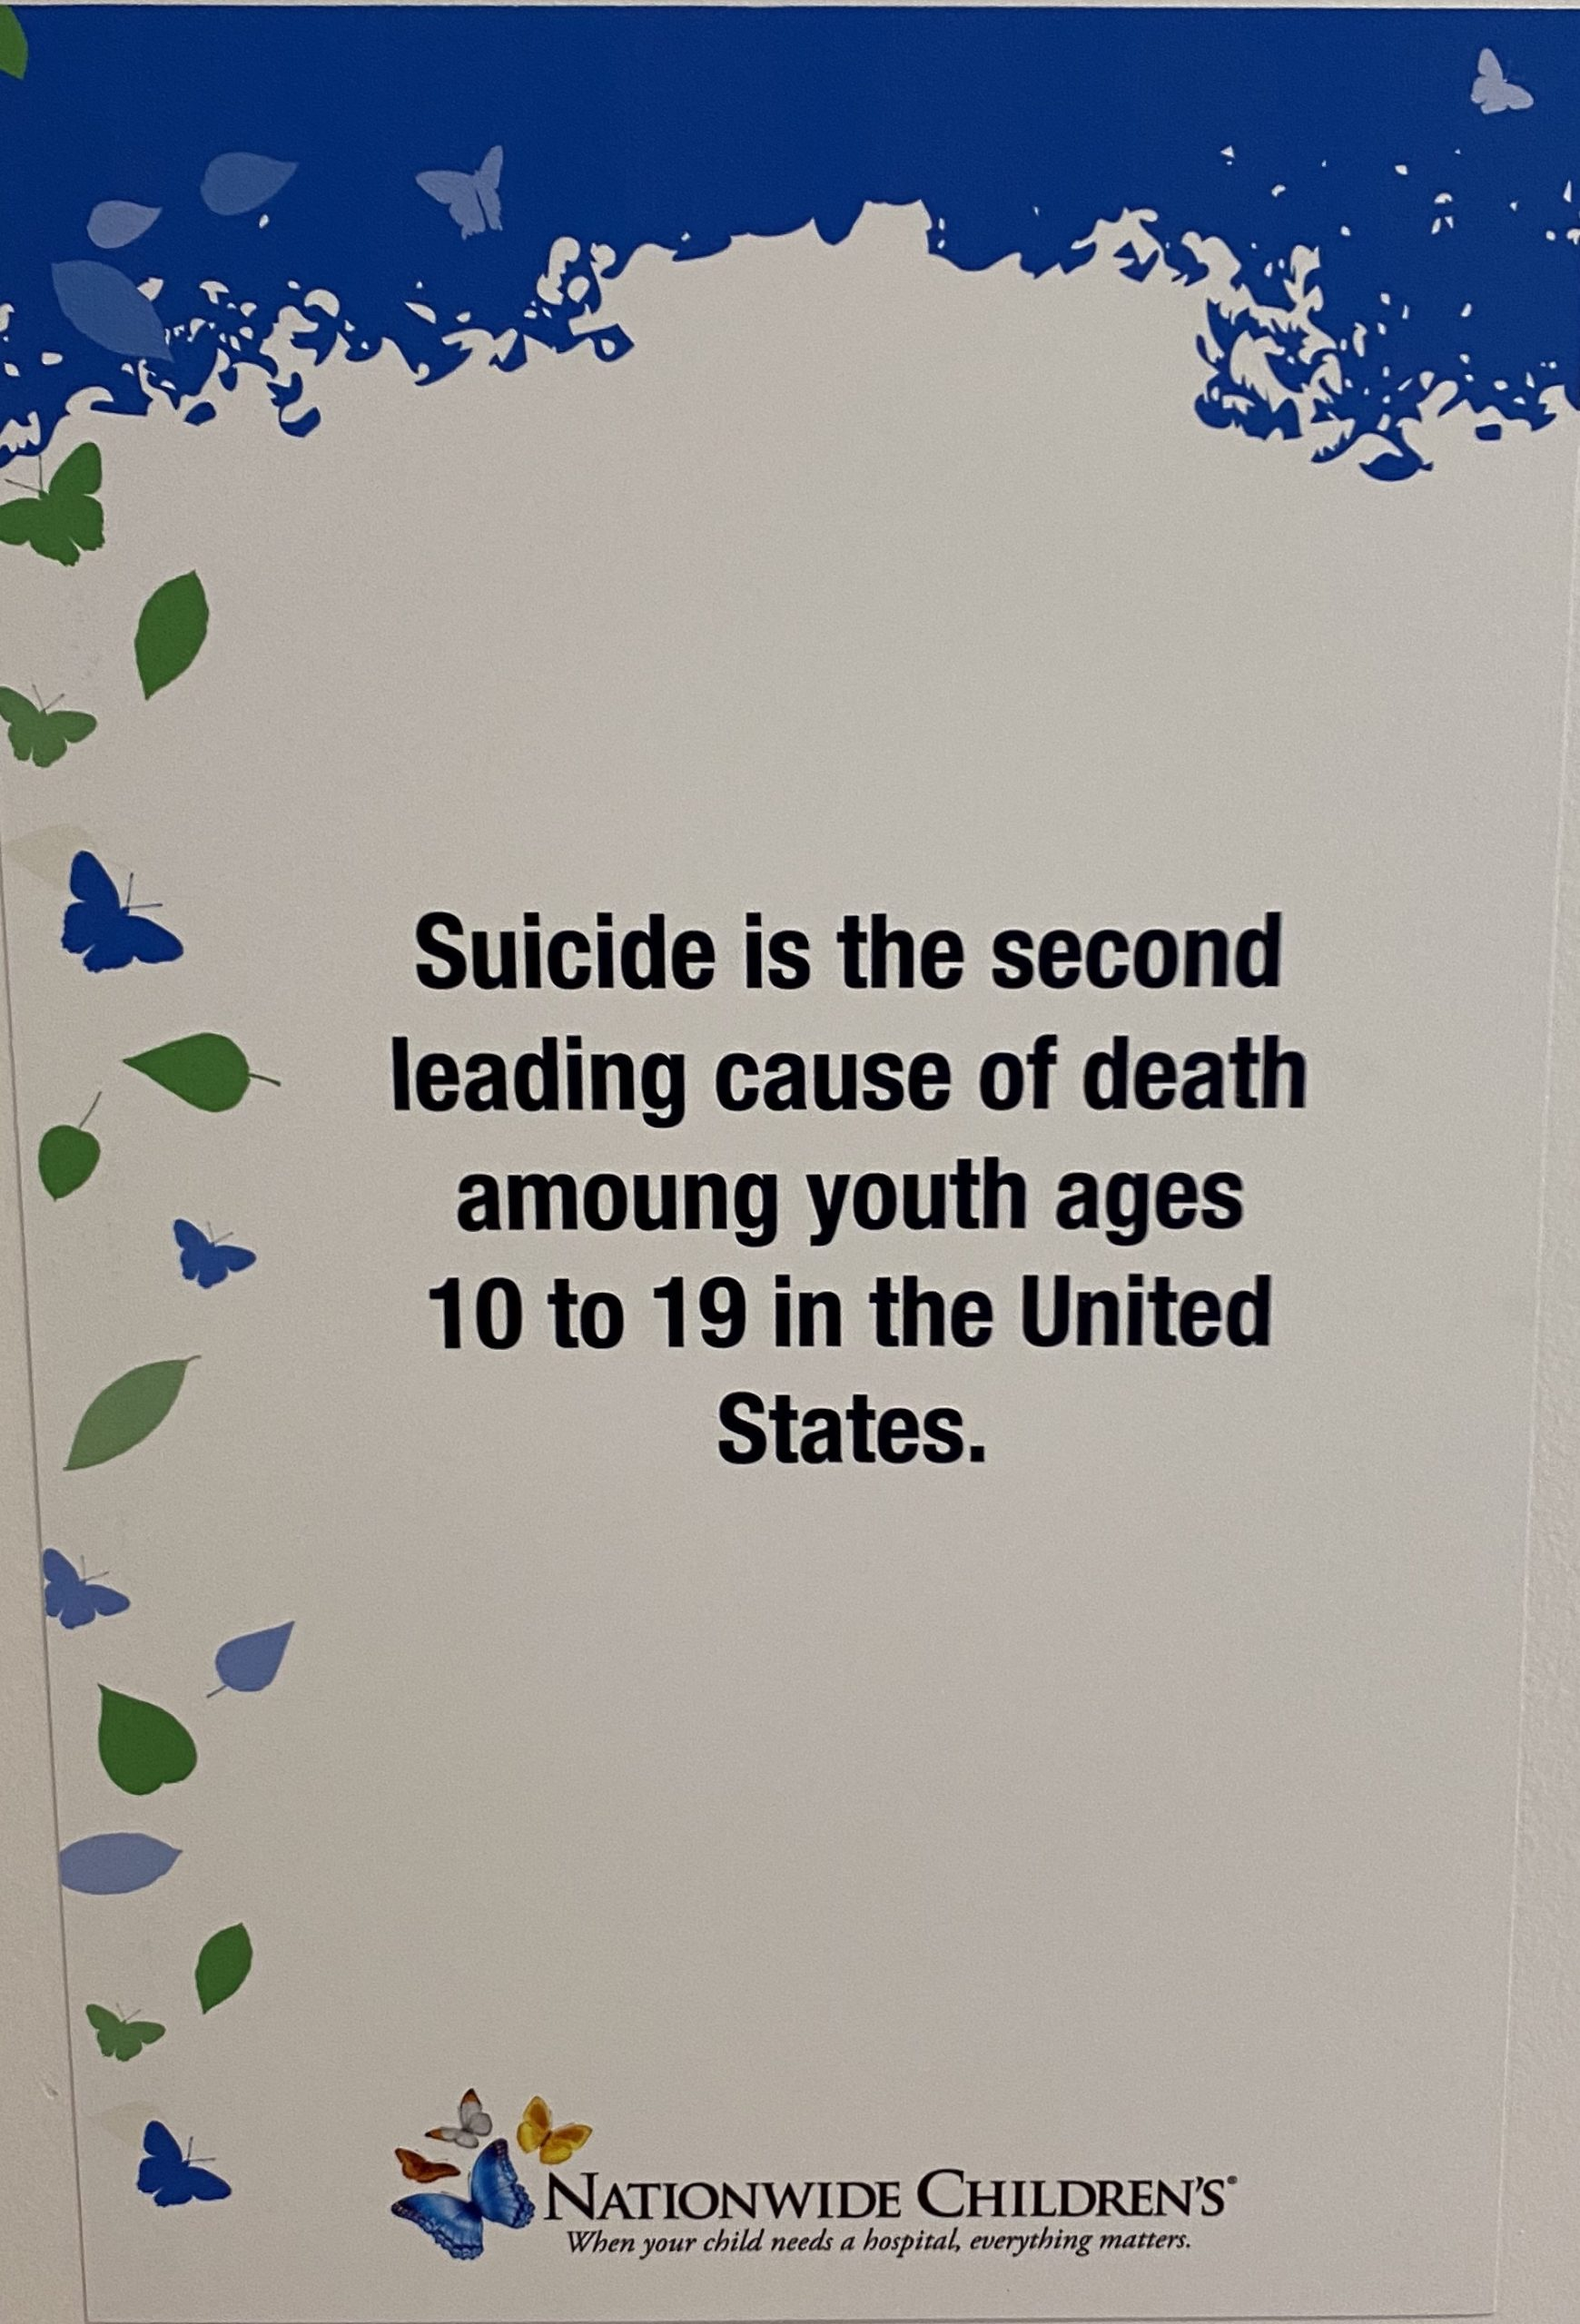 Suicide is the second leading cause of death among youth ages 10 to 19 in the United States